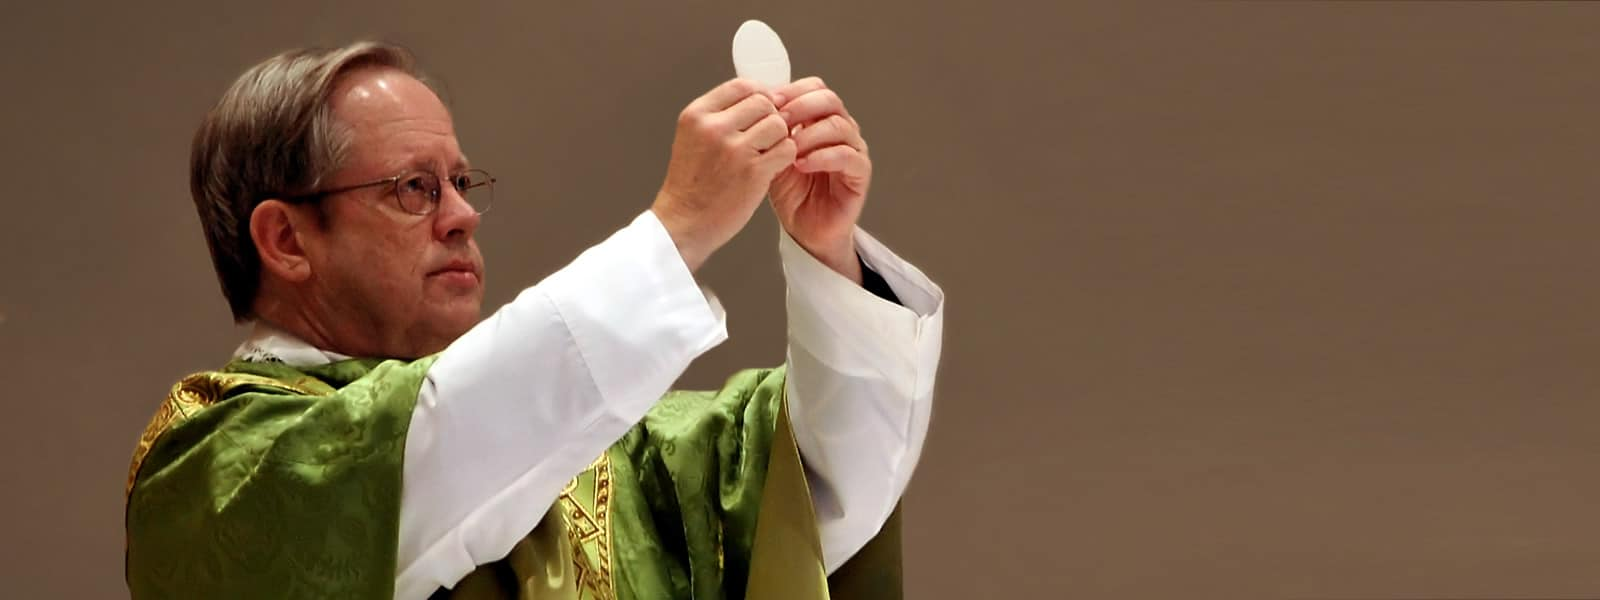 Priest elevates the Eucharist during Mass. Receiving the Eucharist is one precept of the Catholic Church.